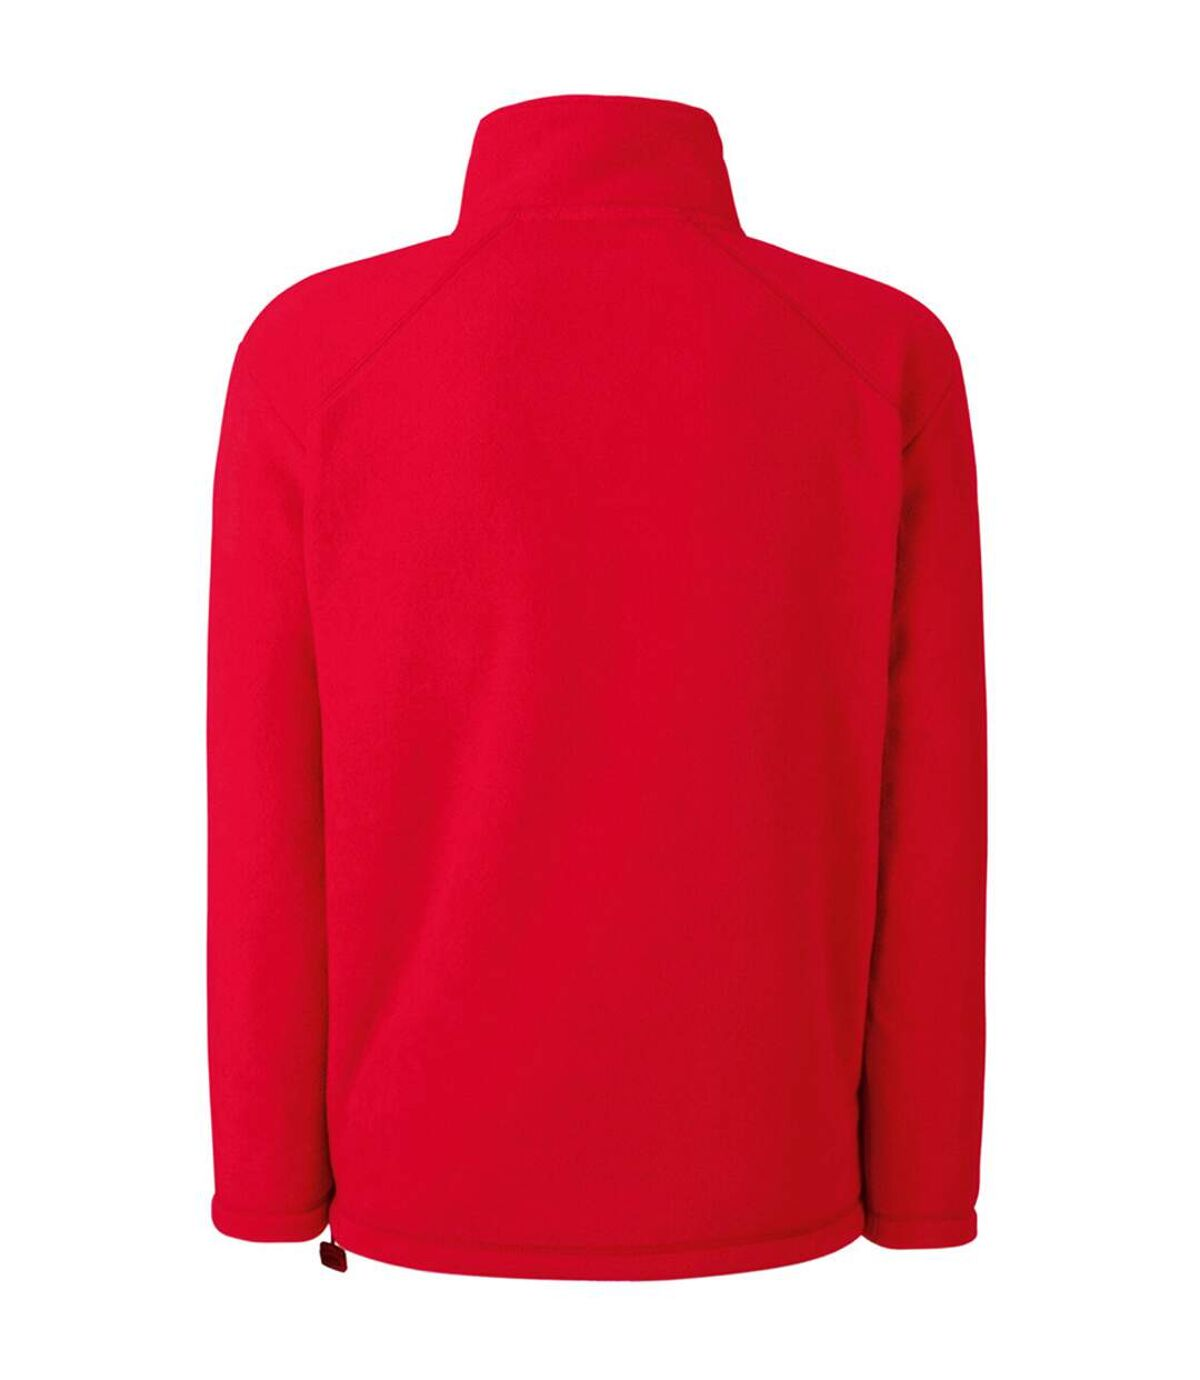 Fruit Of The Loom - Veste polaire - Homme (Rouge) - UTBC372